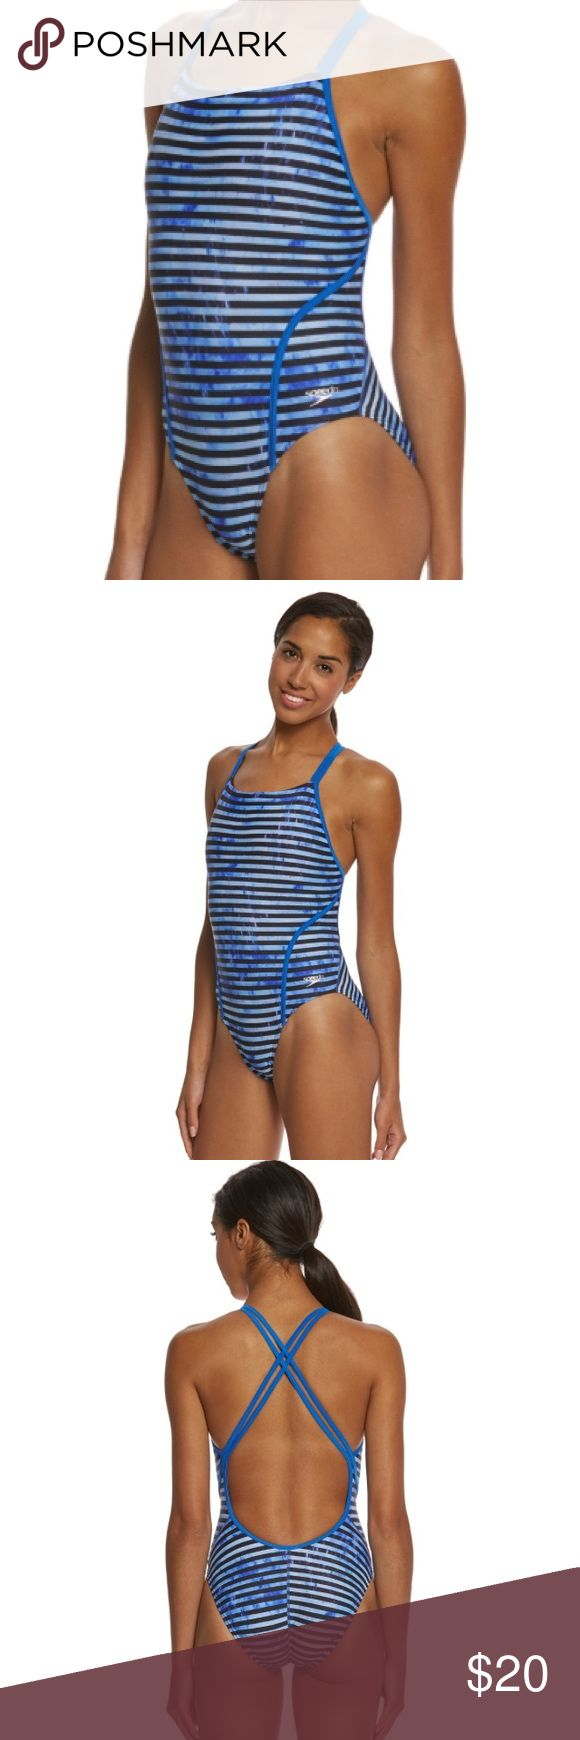 NWT Speedo PRO LT RACING STRIPE VOLT BACK SWIMSUIT New with tags! Speedo women's pro LT racing stripe volt back one piece swimsuit. Size 6/32.  Show your stripes as you win with the speedo women's one piece suit. This sleek cut one piece bathing suit features dual thin straps and minimal back coverage for maximum comfort. 85% polyester/15% spandex. High leg cut. Competitive fit. Pro LT fabric. Speedo Swim One Pieces